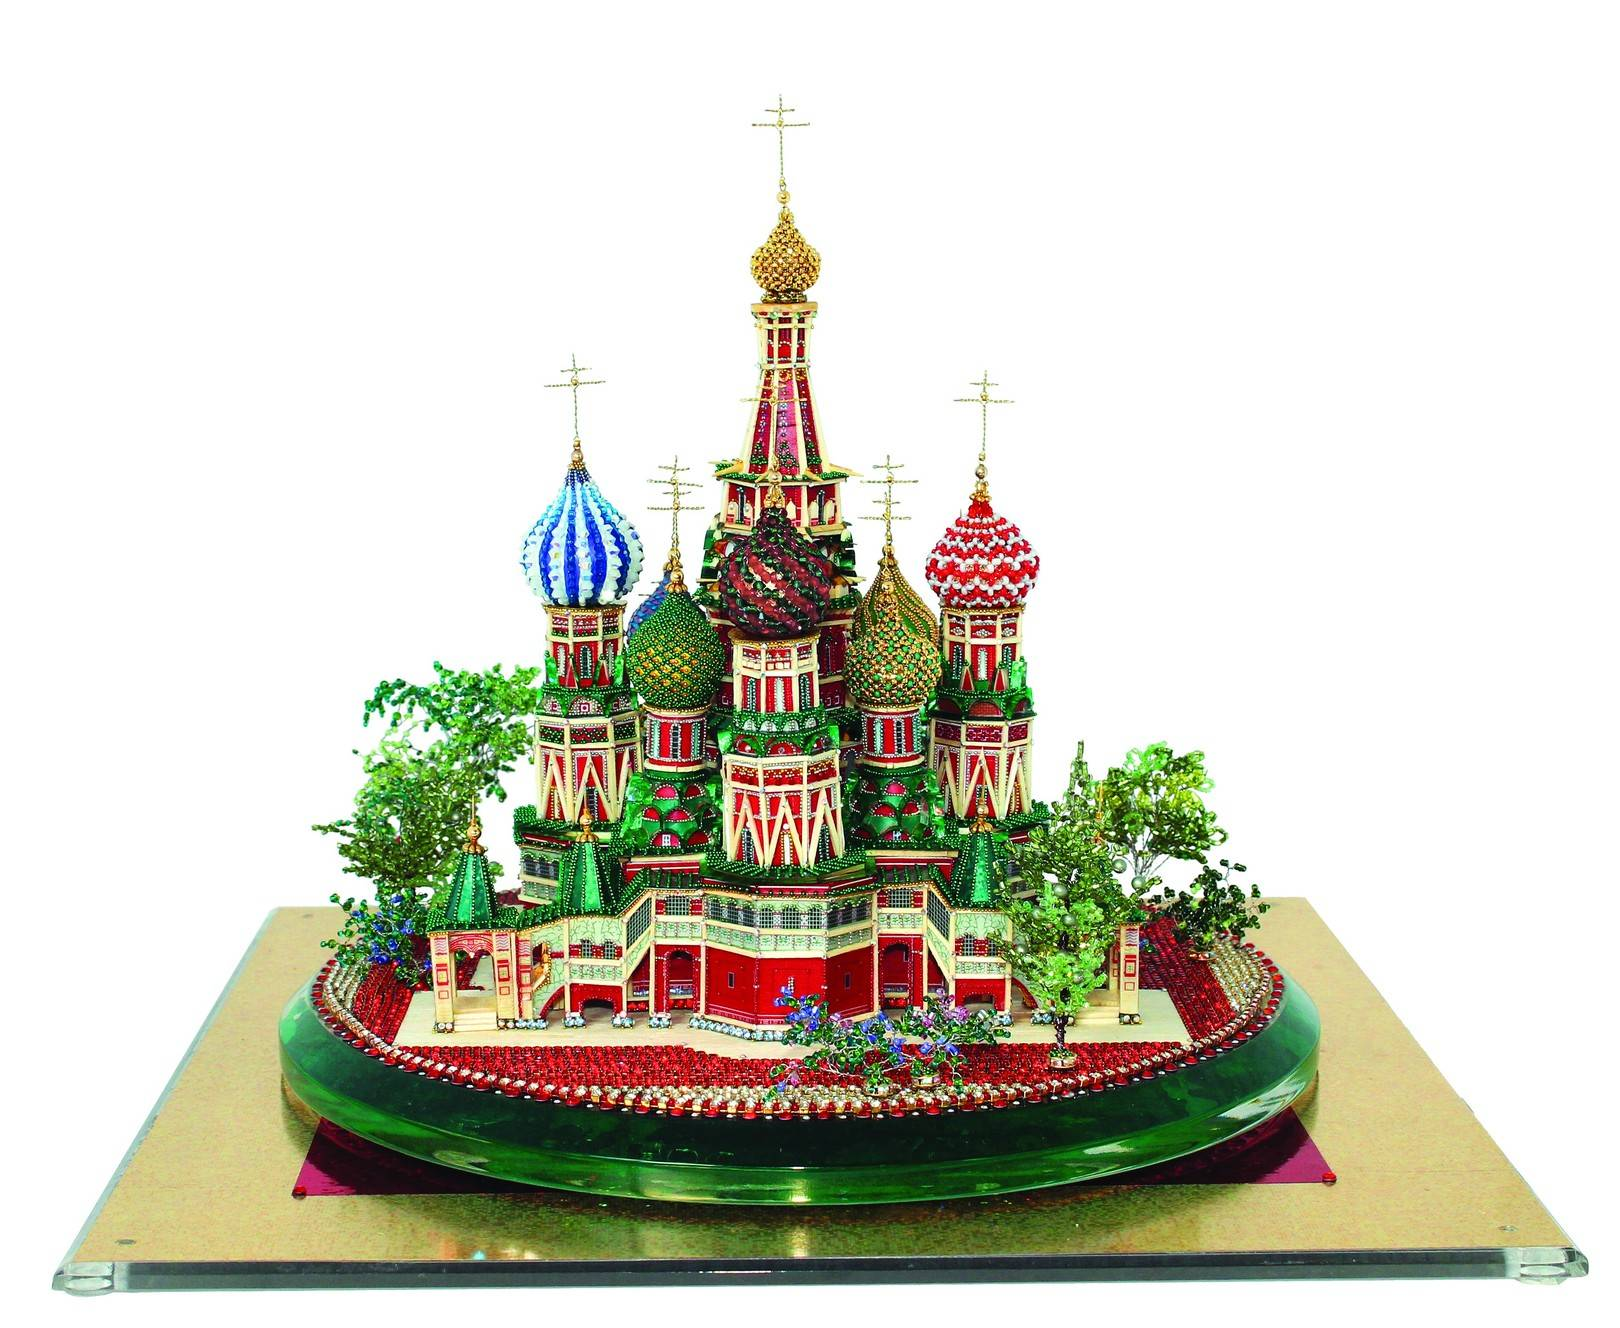 Zhamoydo Anatoly, Bulba Natalya St. Basil's Cathedral, 2012   Matches Beads: Japanese beads (Toho company) – 5 colours,  Czech beads (Preciosa Ornela company) - 19 colours  (2 types – gilded),  microbeads of 9 colours,  Japanese beads of 1 colour,  Swarovski beads of 7 colours,  Adhesive Swarovski beads of 3 types, Pastes in metal of 3 colours,  Czech rondelles. Metal beads and caps of Tierra Cast company (the USA),   Wire of silver and golden colour (thickness 0,3 mm, 0,2 mm, 0,1 mm),  Adhesive film 4 colours,  Computer graphics,  tinsel,  glue of 4 types,  (PVA adhesive, epoxy adhesive, aquarium adhesive, Draconfly),  plasticine,  acrylic resin.